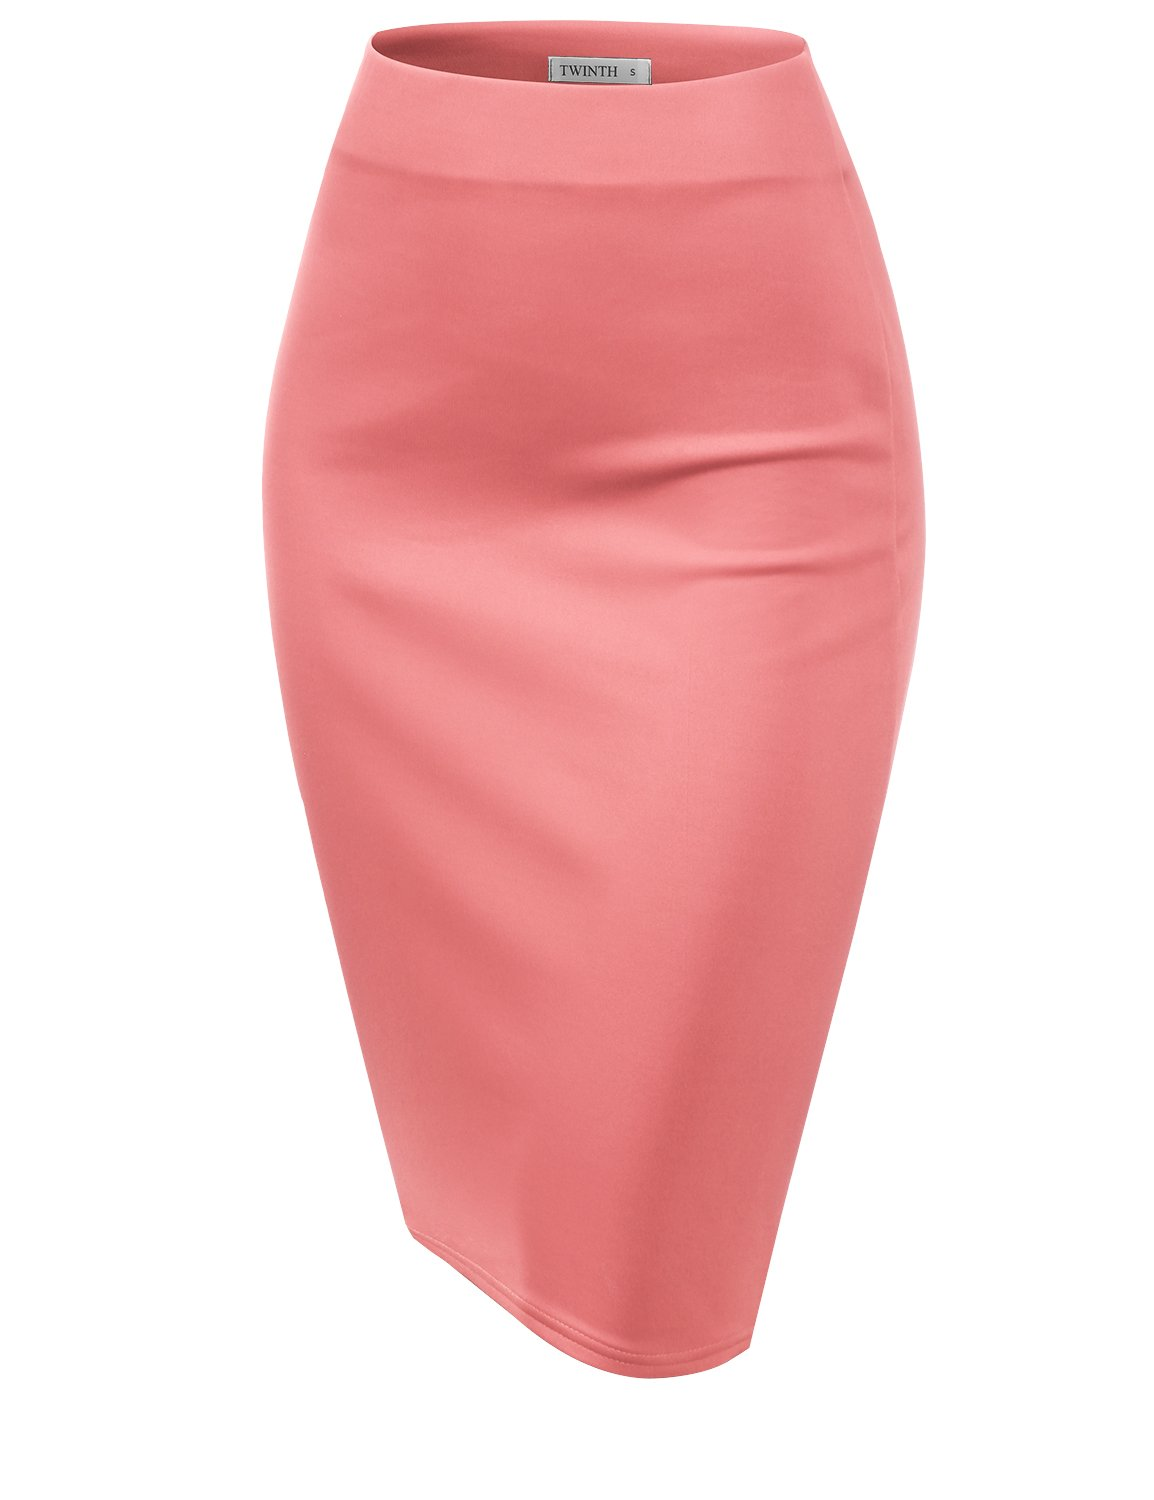 CLOVERY Slim Vintage Pencil Skirts Below Knee Skirt Coral 3XL Plus Size